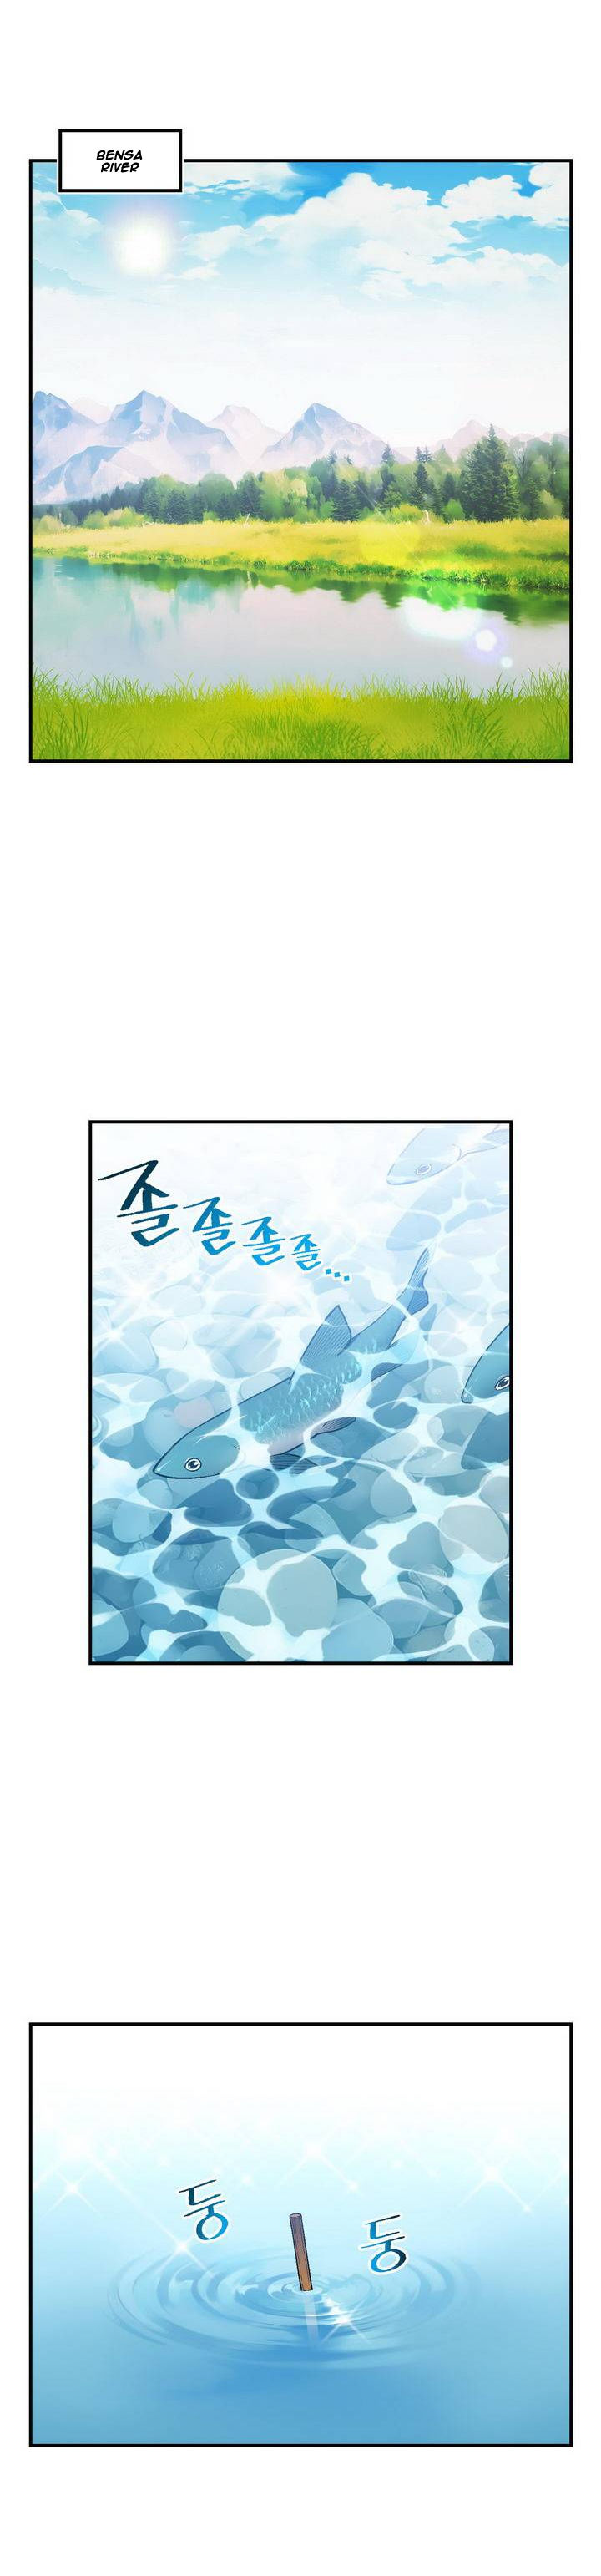 The Legendary Moonlight Sculptor 95 Page 1